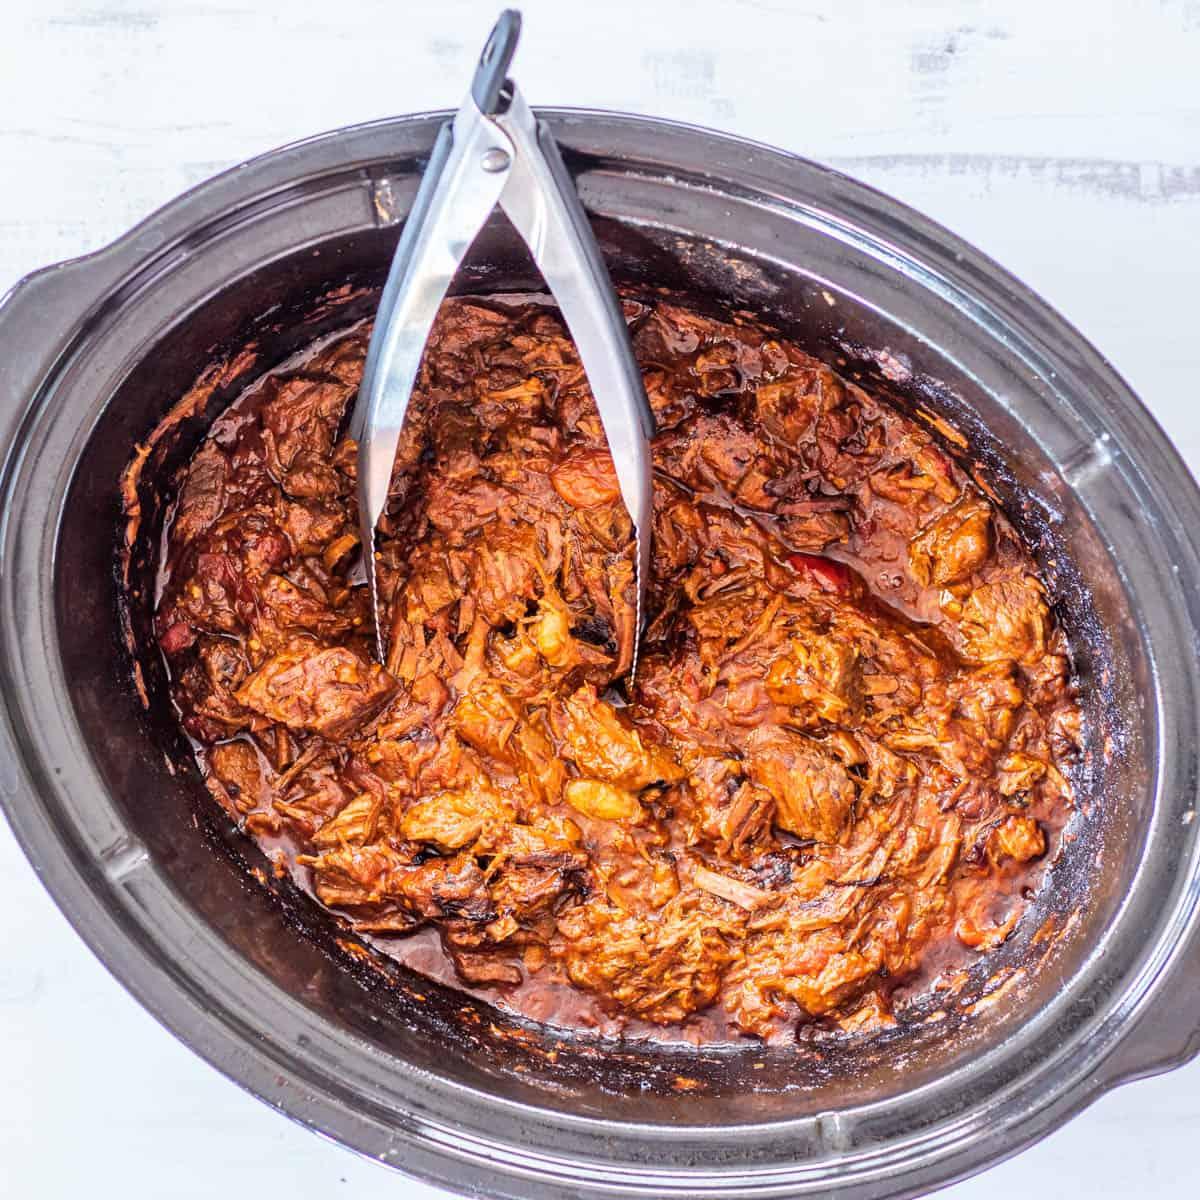 Slow-cooked and shredded Korean beef  in a black slow cooker with stainless steel tongs.